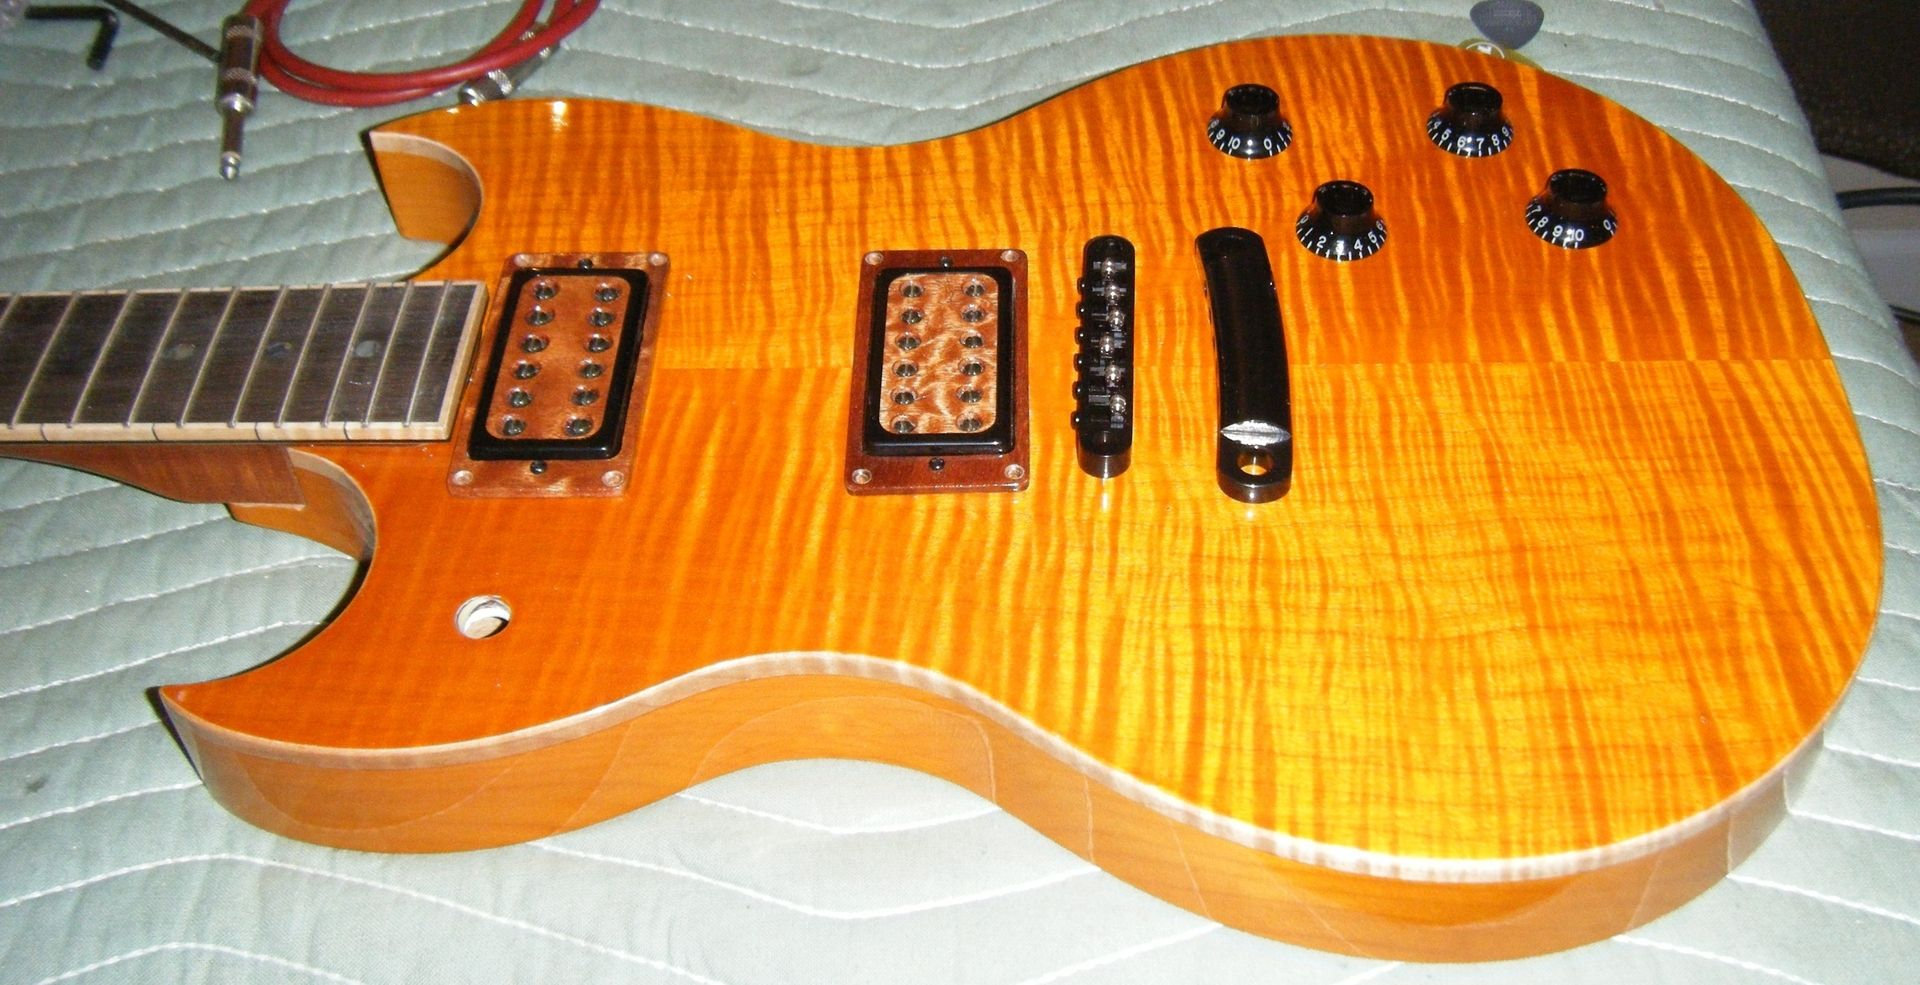 hand crafted hawkins guitar sg style electric guitar by hawkins guitar. Black Bedroom Furniture Sets. Home Design Ideas